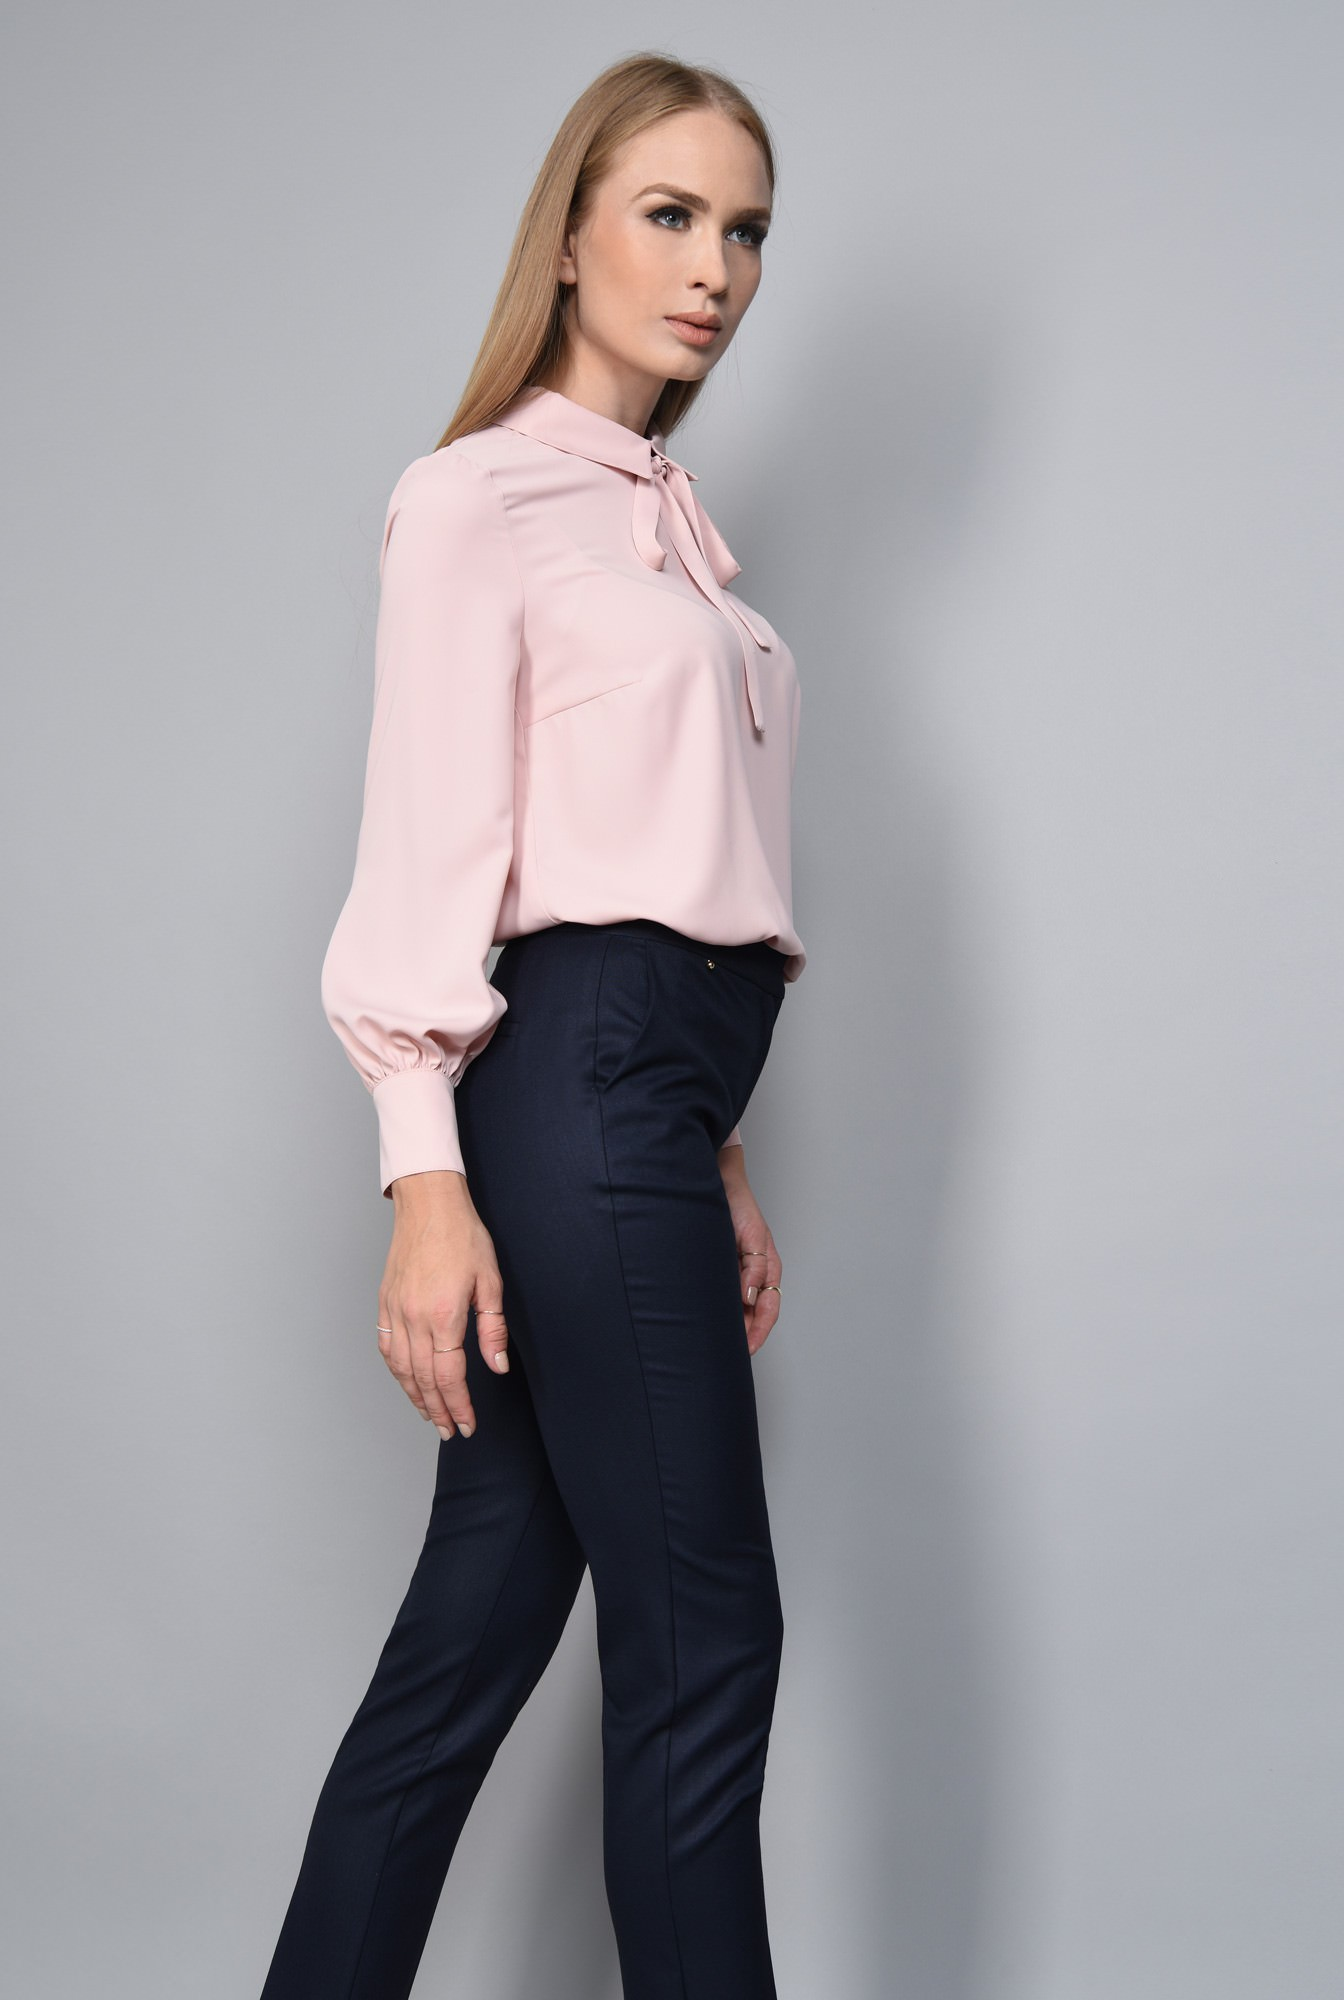 0 - BLUZA OFFICE BL 280-ROZ